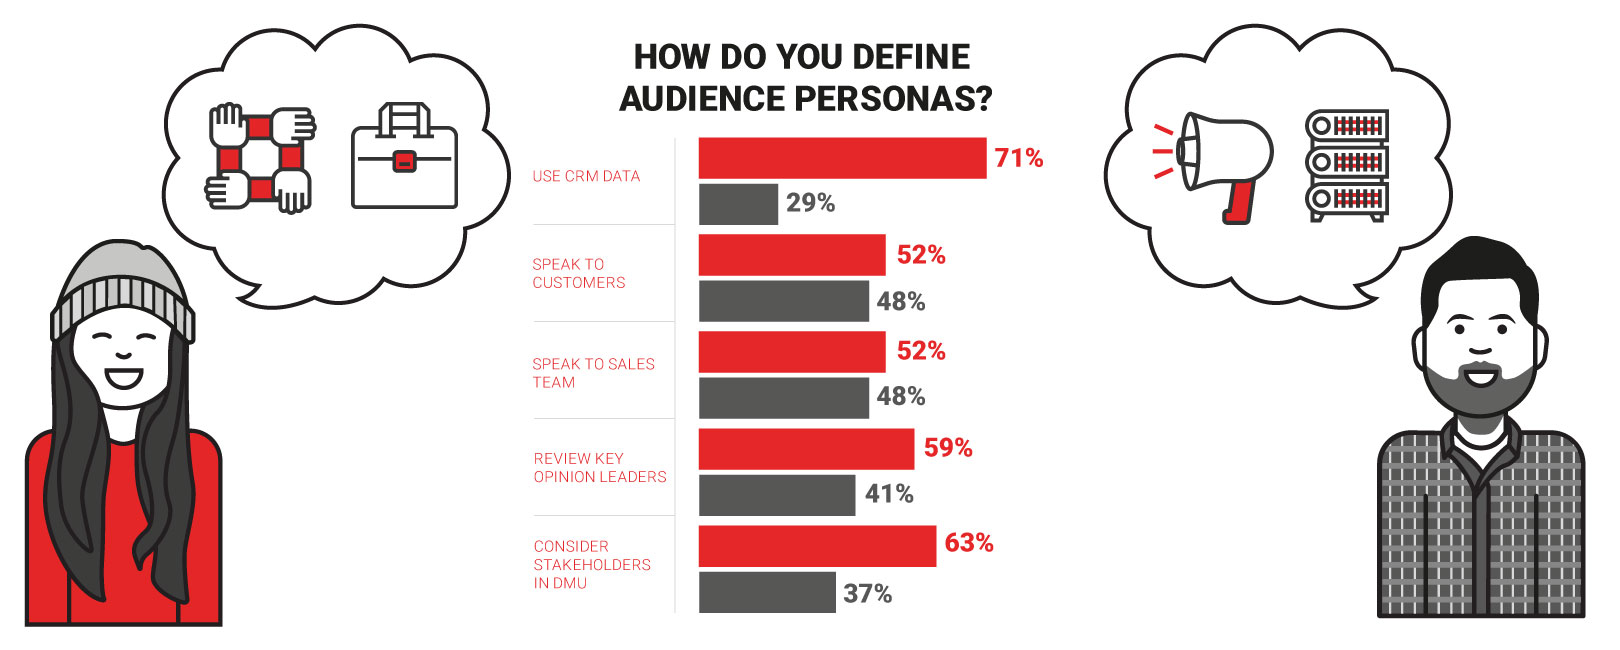 How do you define audience personas?